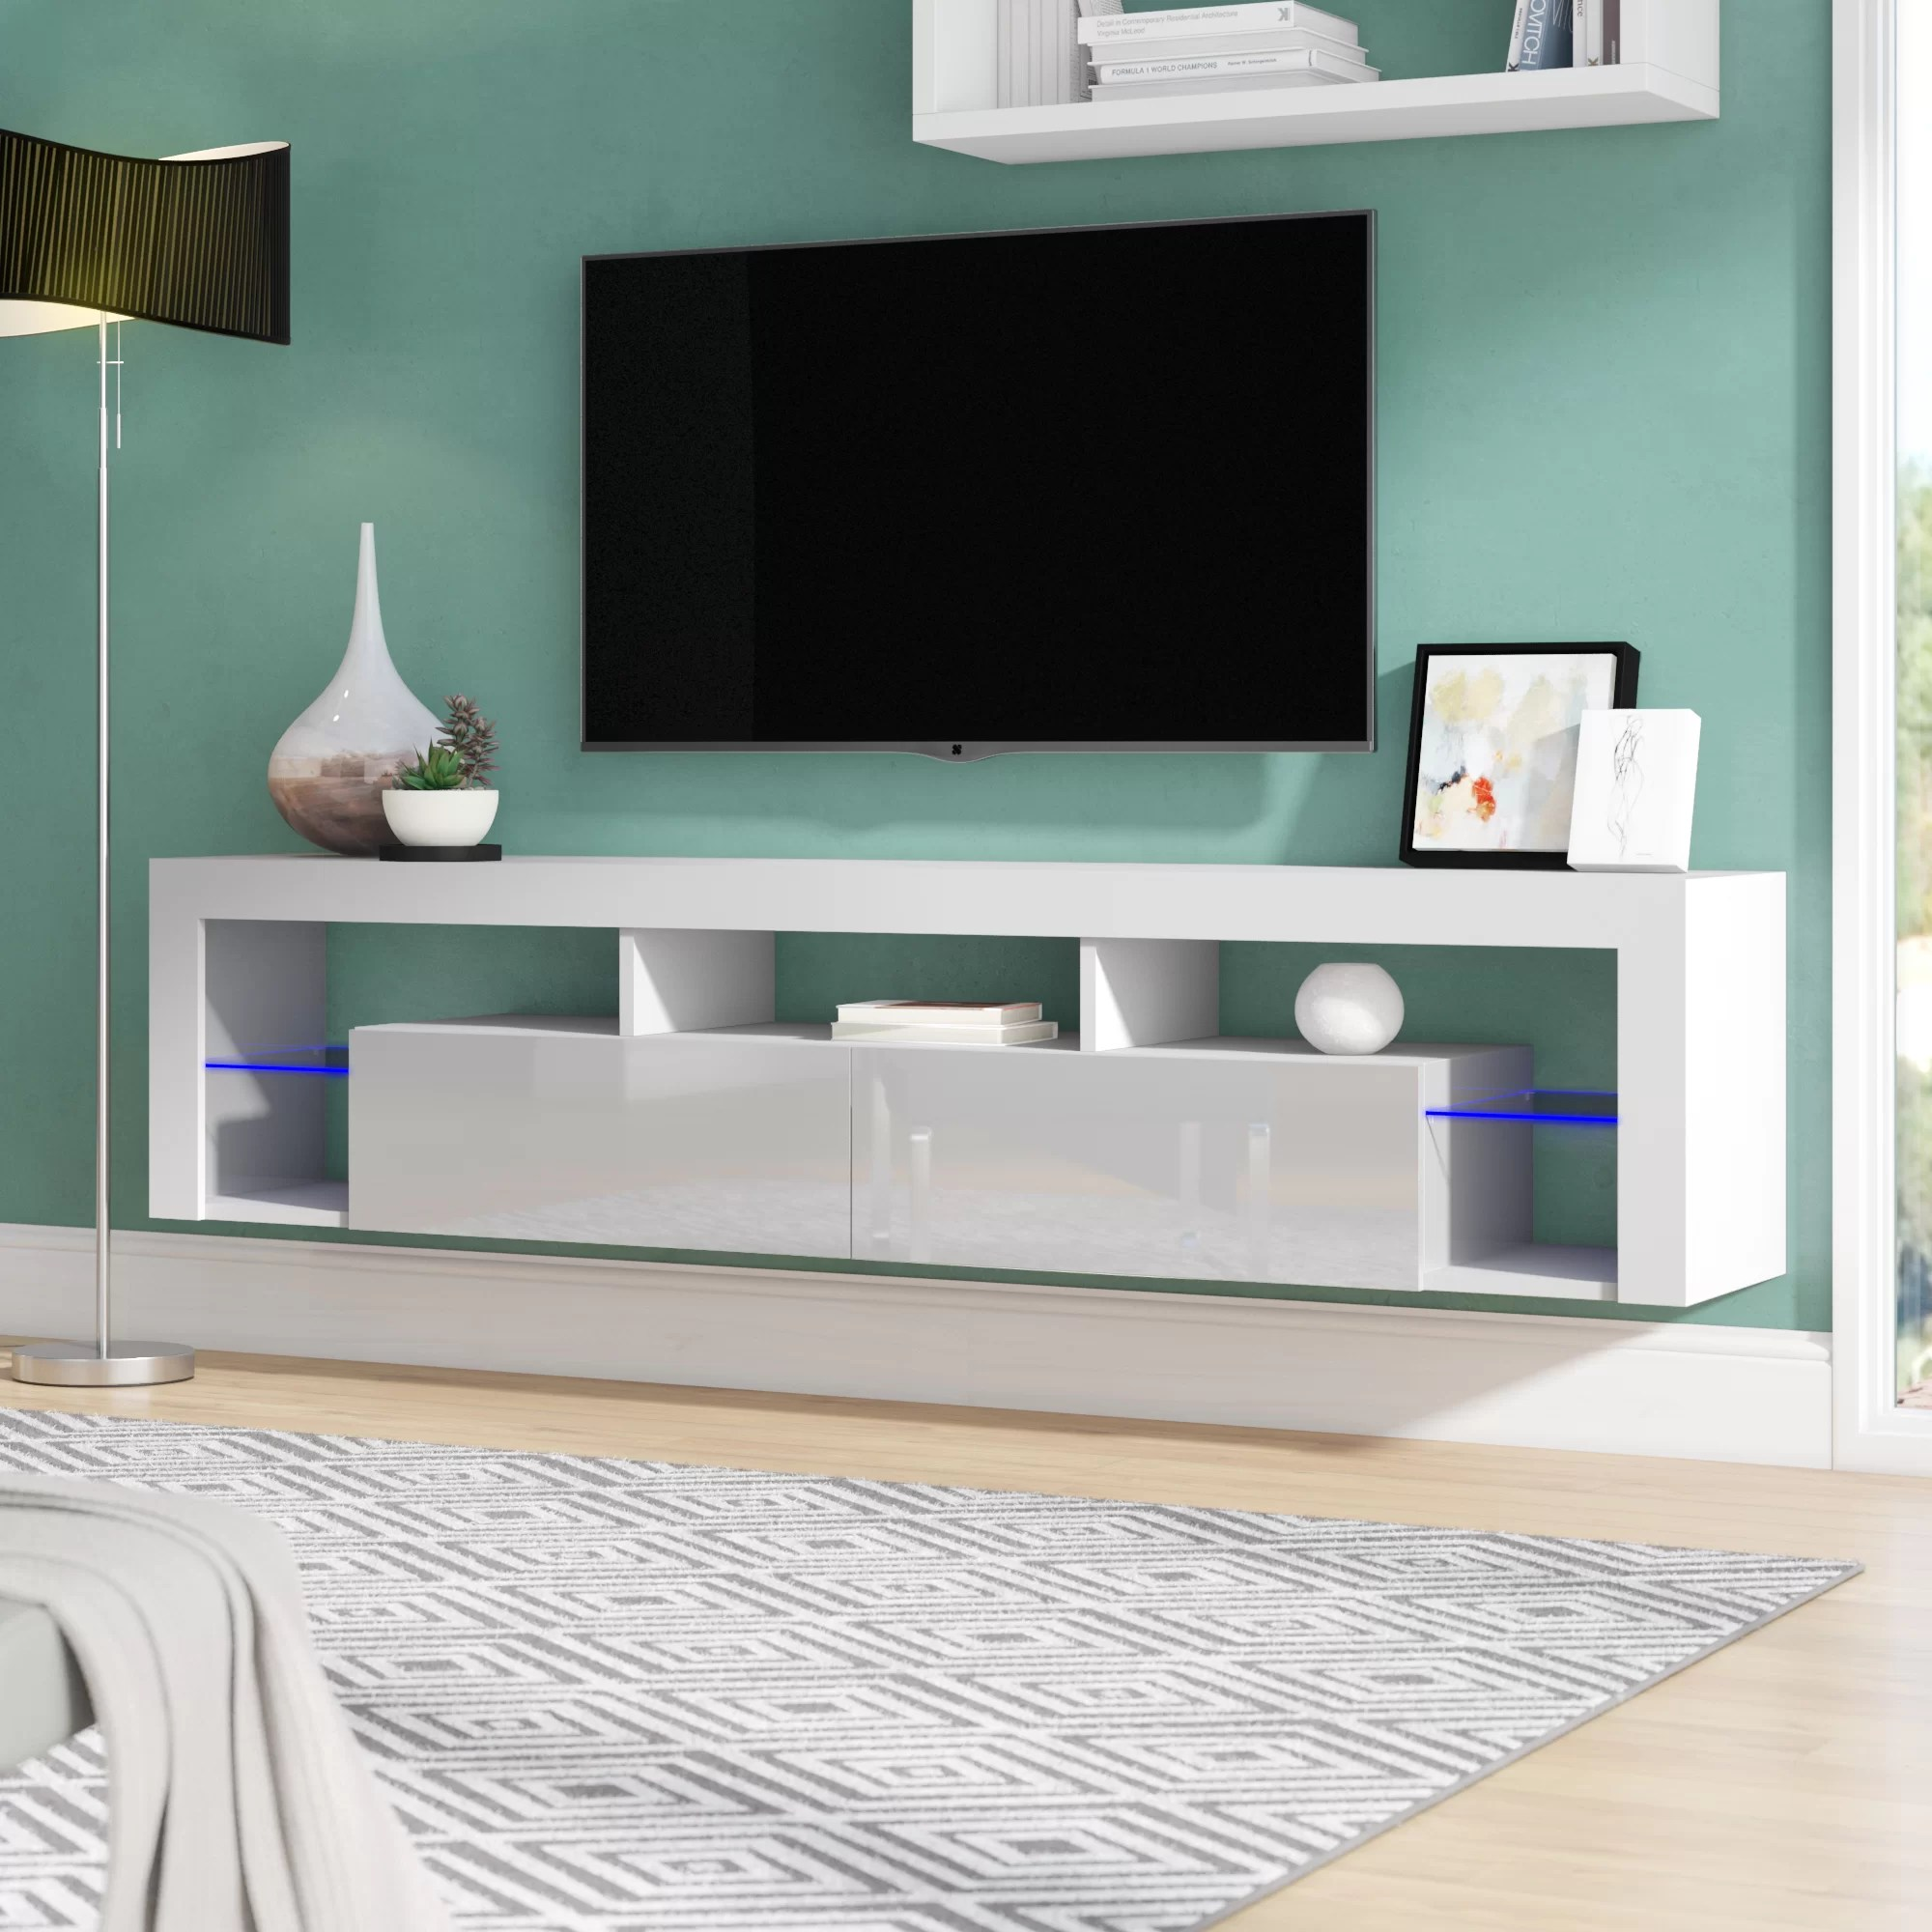 Wood Wall Behind Tv Böttcher Wall Mounted Floating Tv Stand For Tvs Up To 78